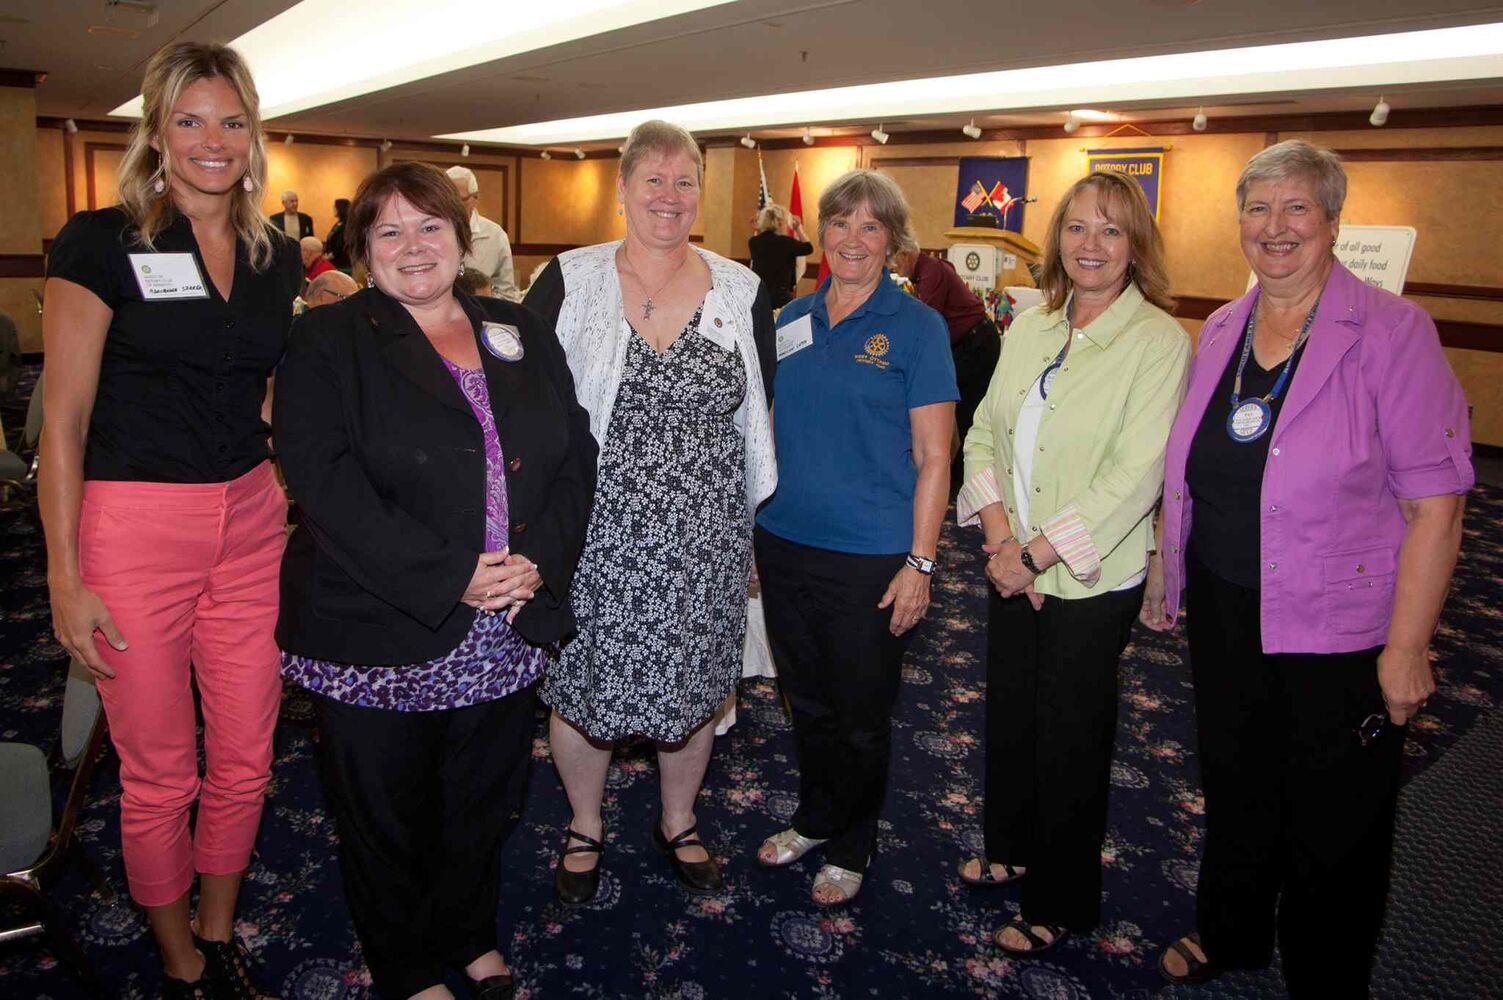 JOHN JOHNSTON / WINNIPEG FREE PRESS 